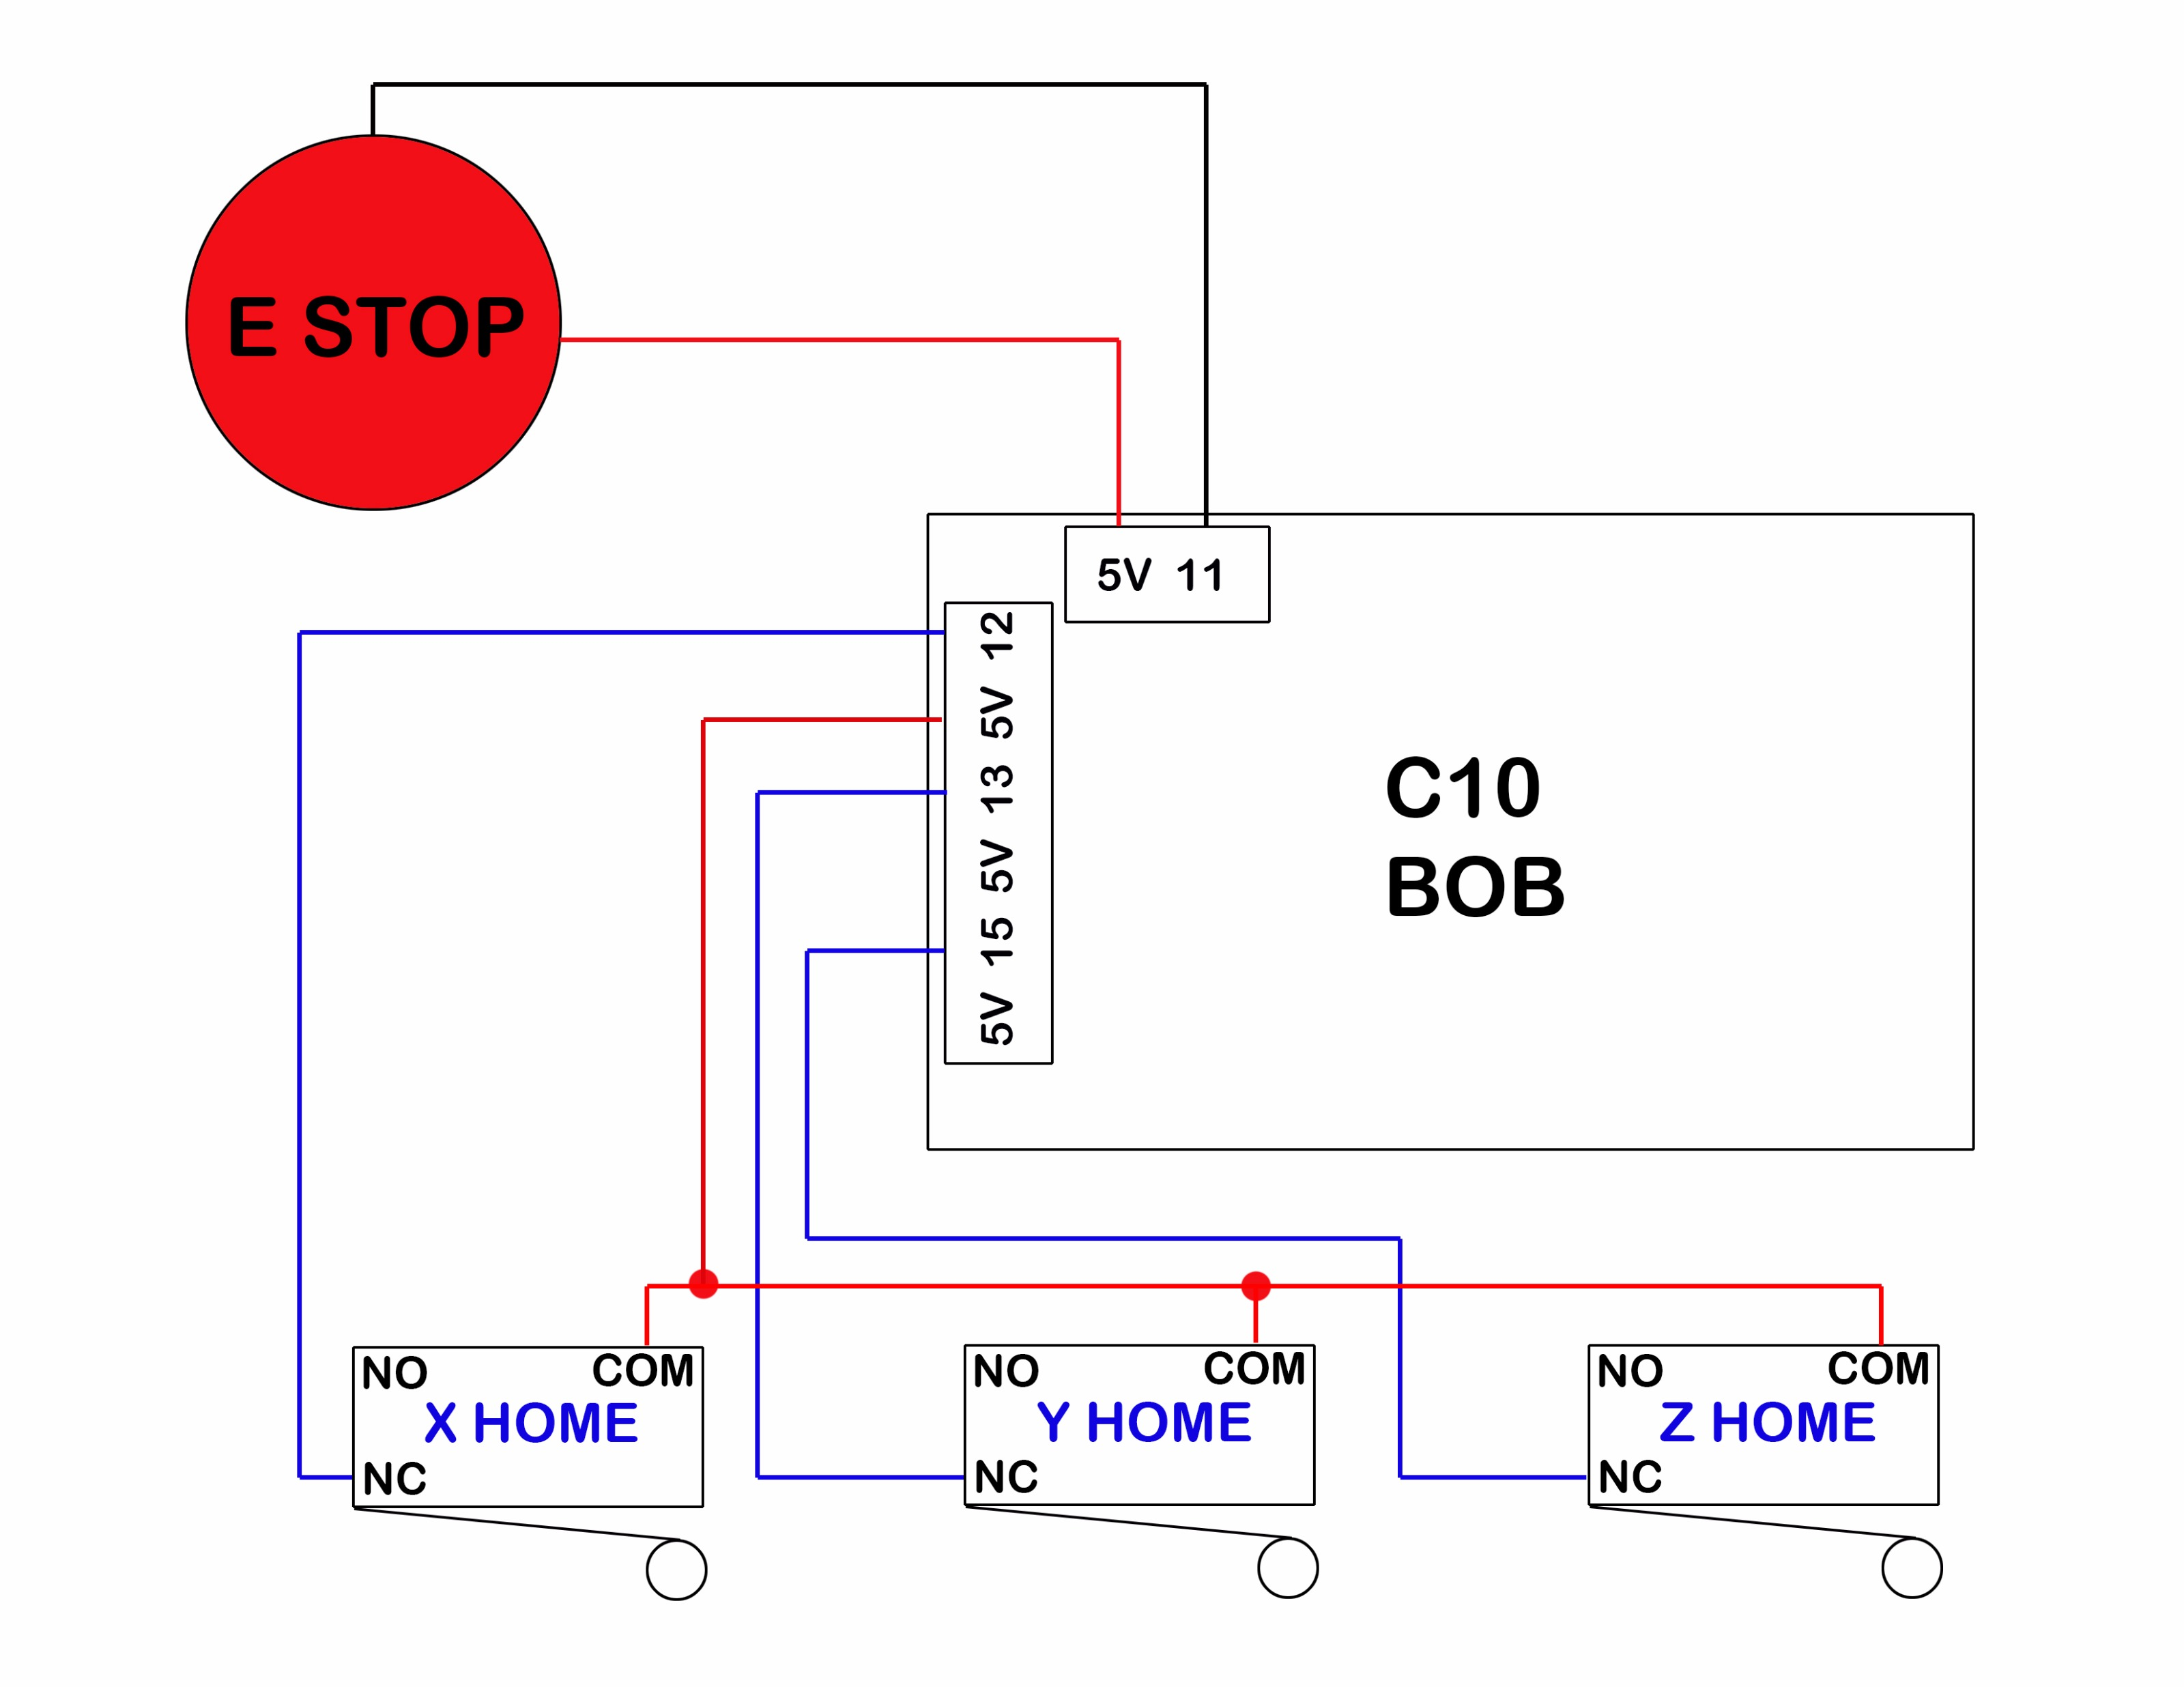 Wiring Schematic For G With C41 And C10 In Case